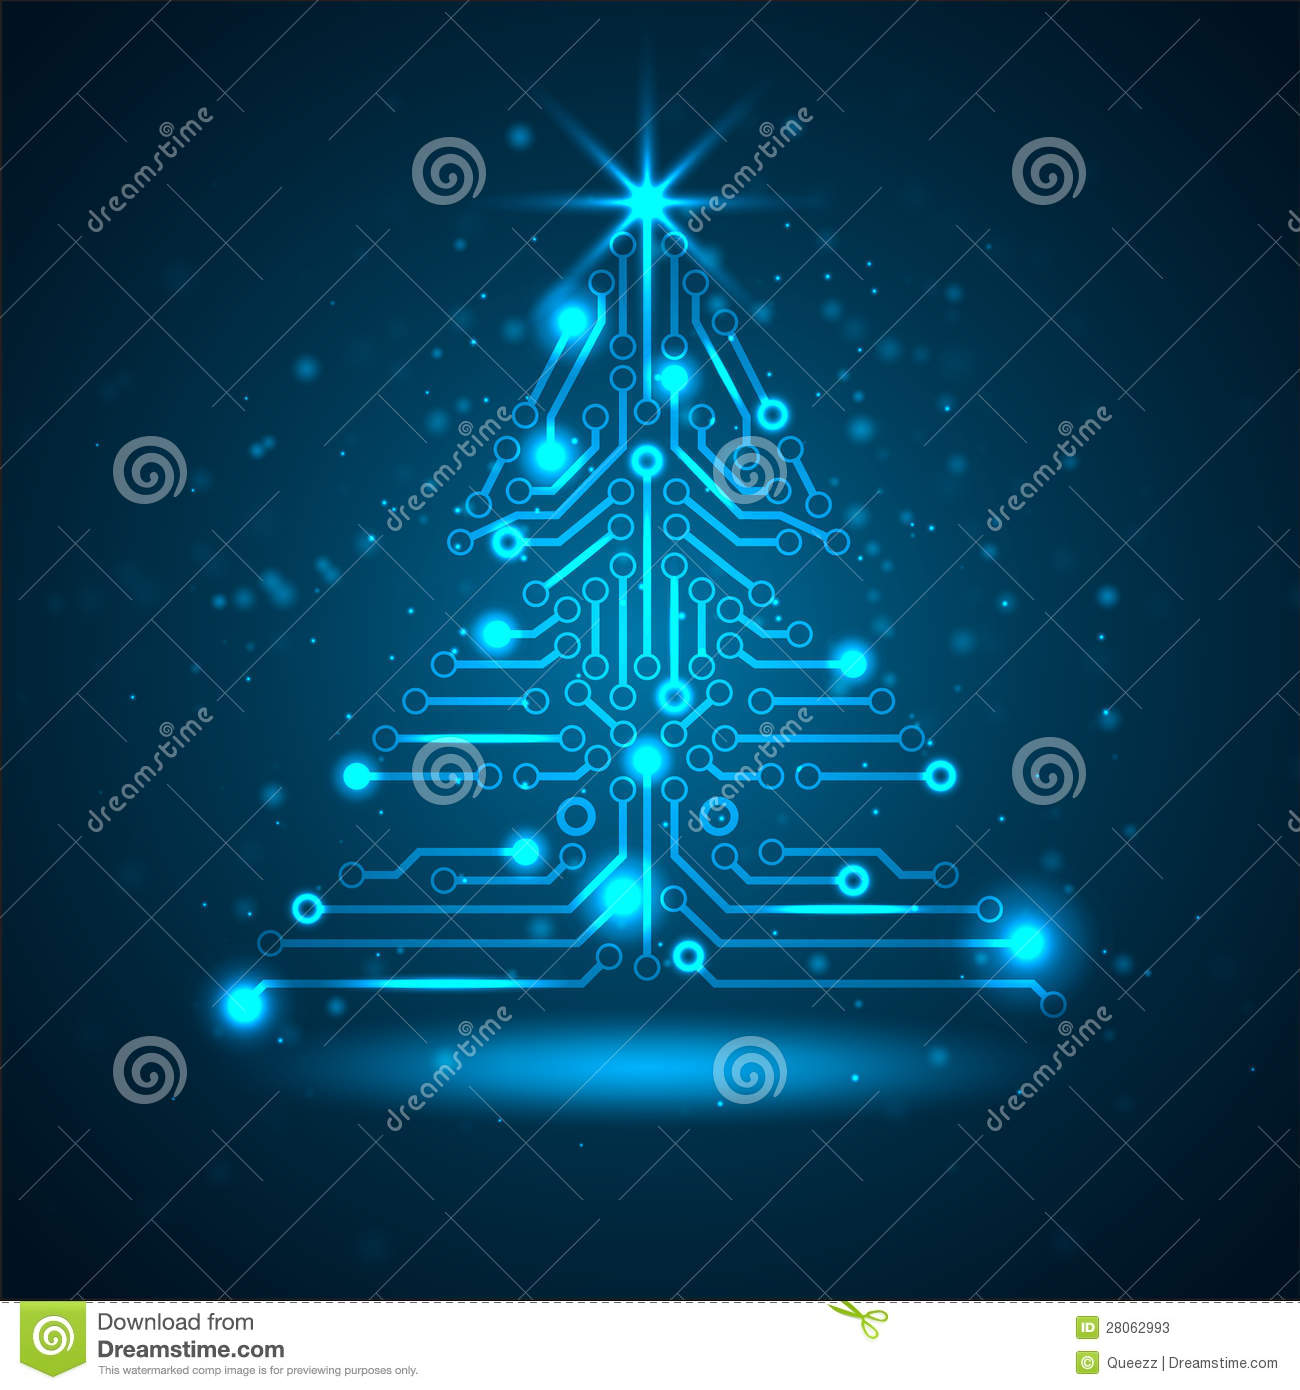 Technology Management Image: Abstract Technology Christmas Tree. Stock Vector